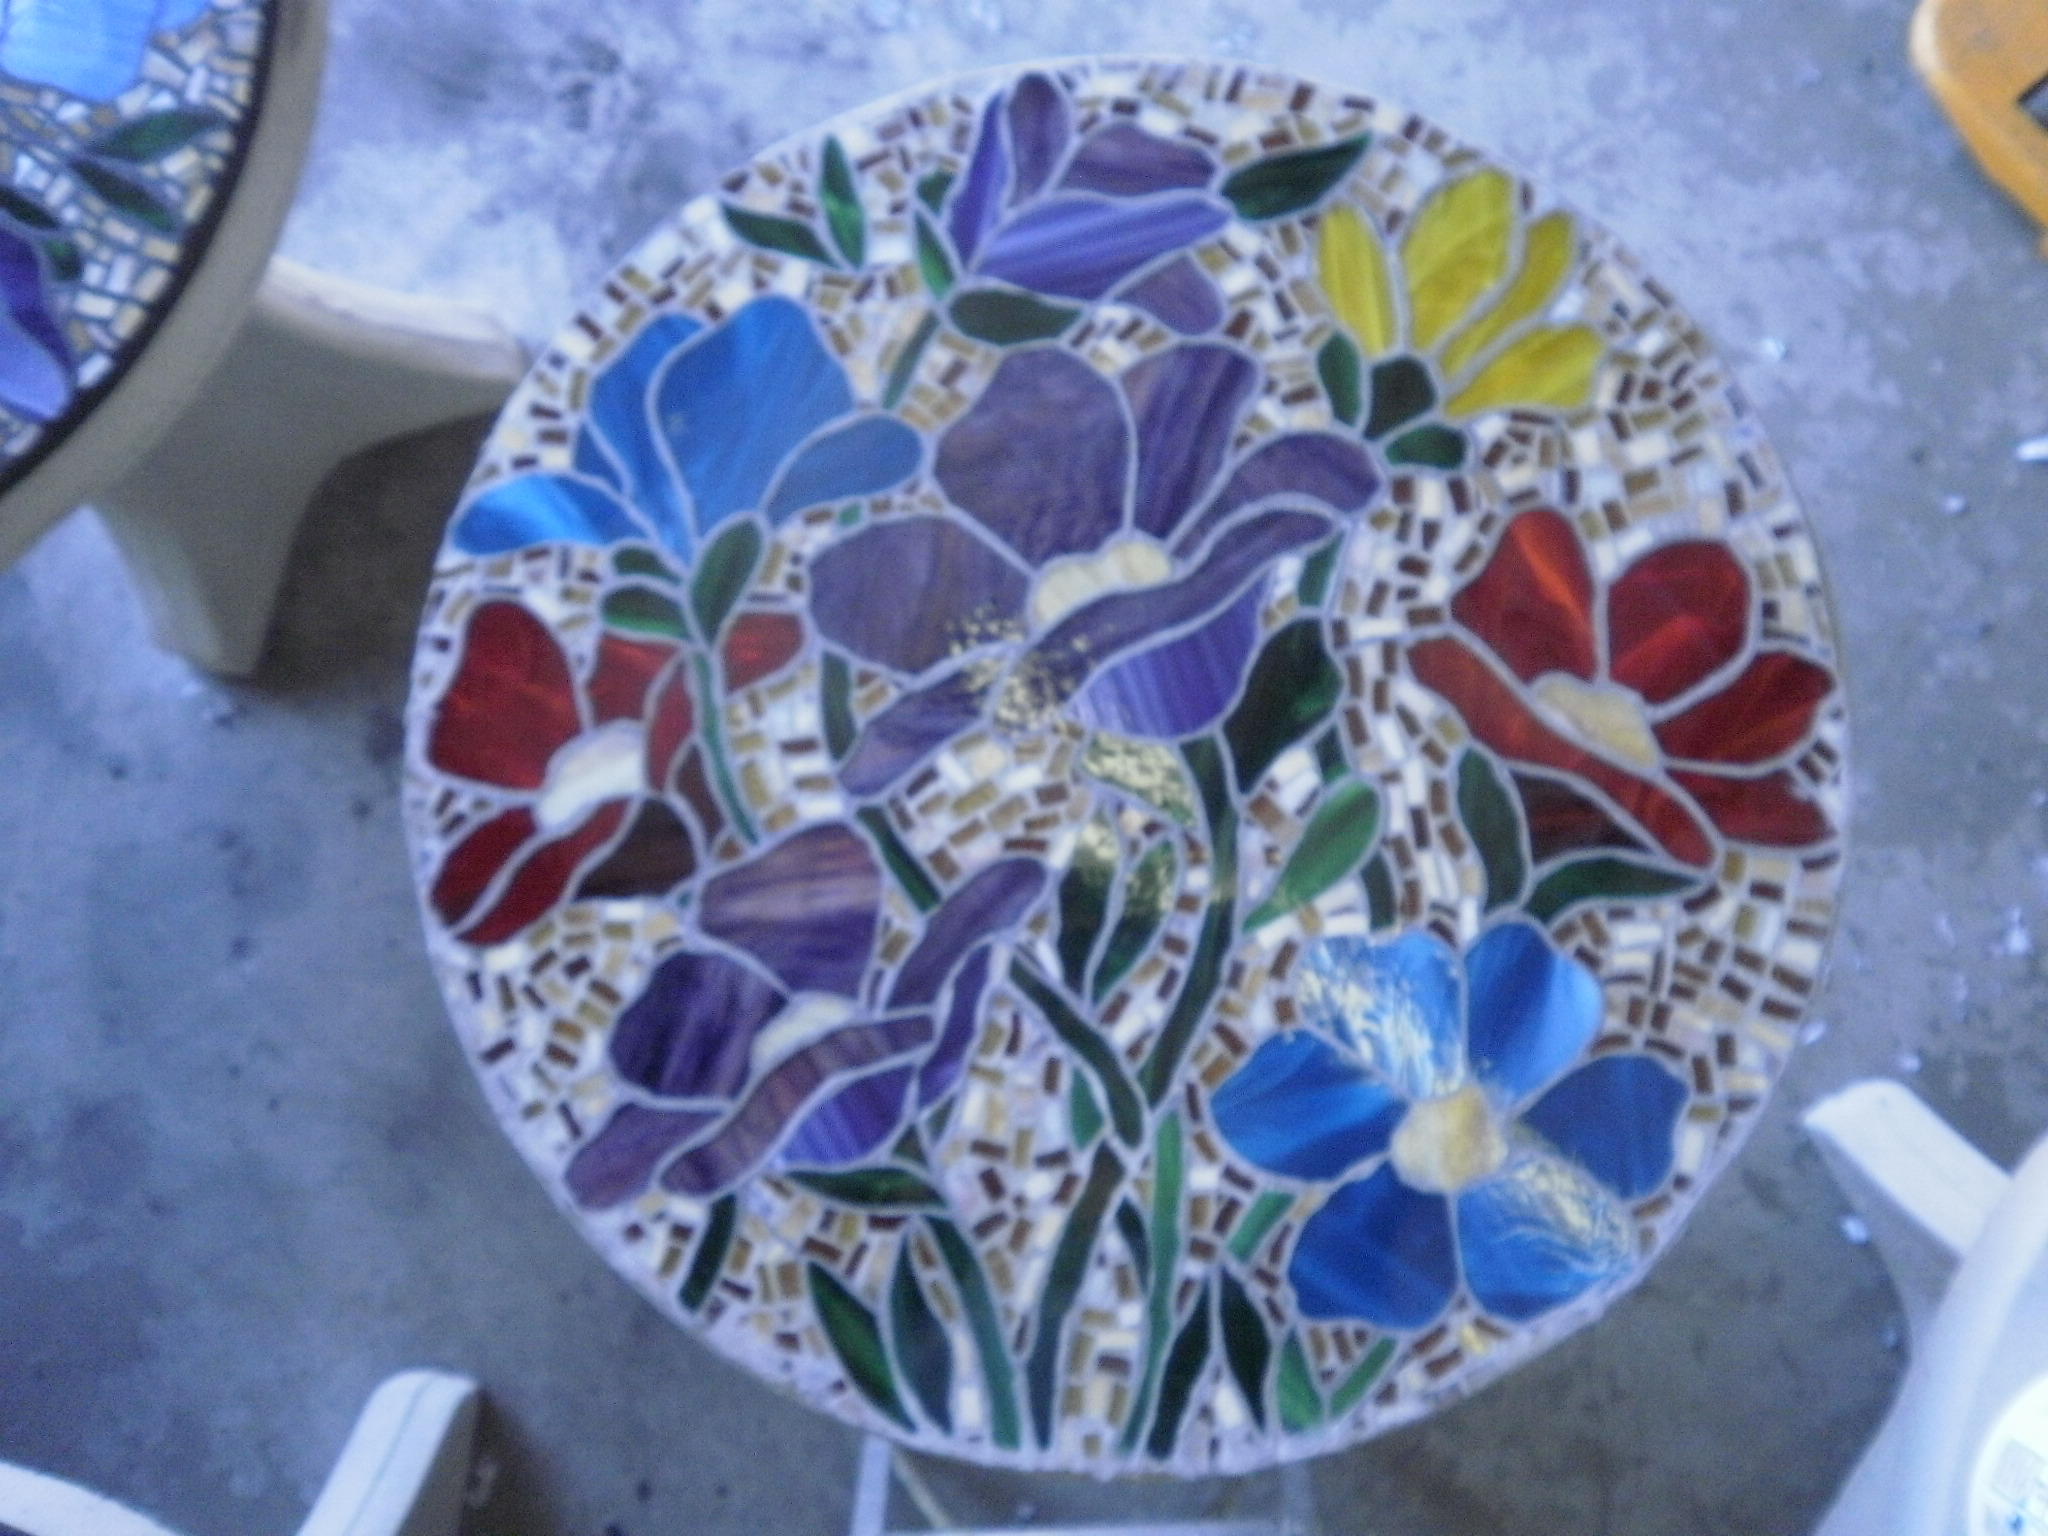 Mosaic Table Top Workshop.